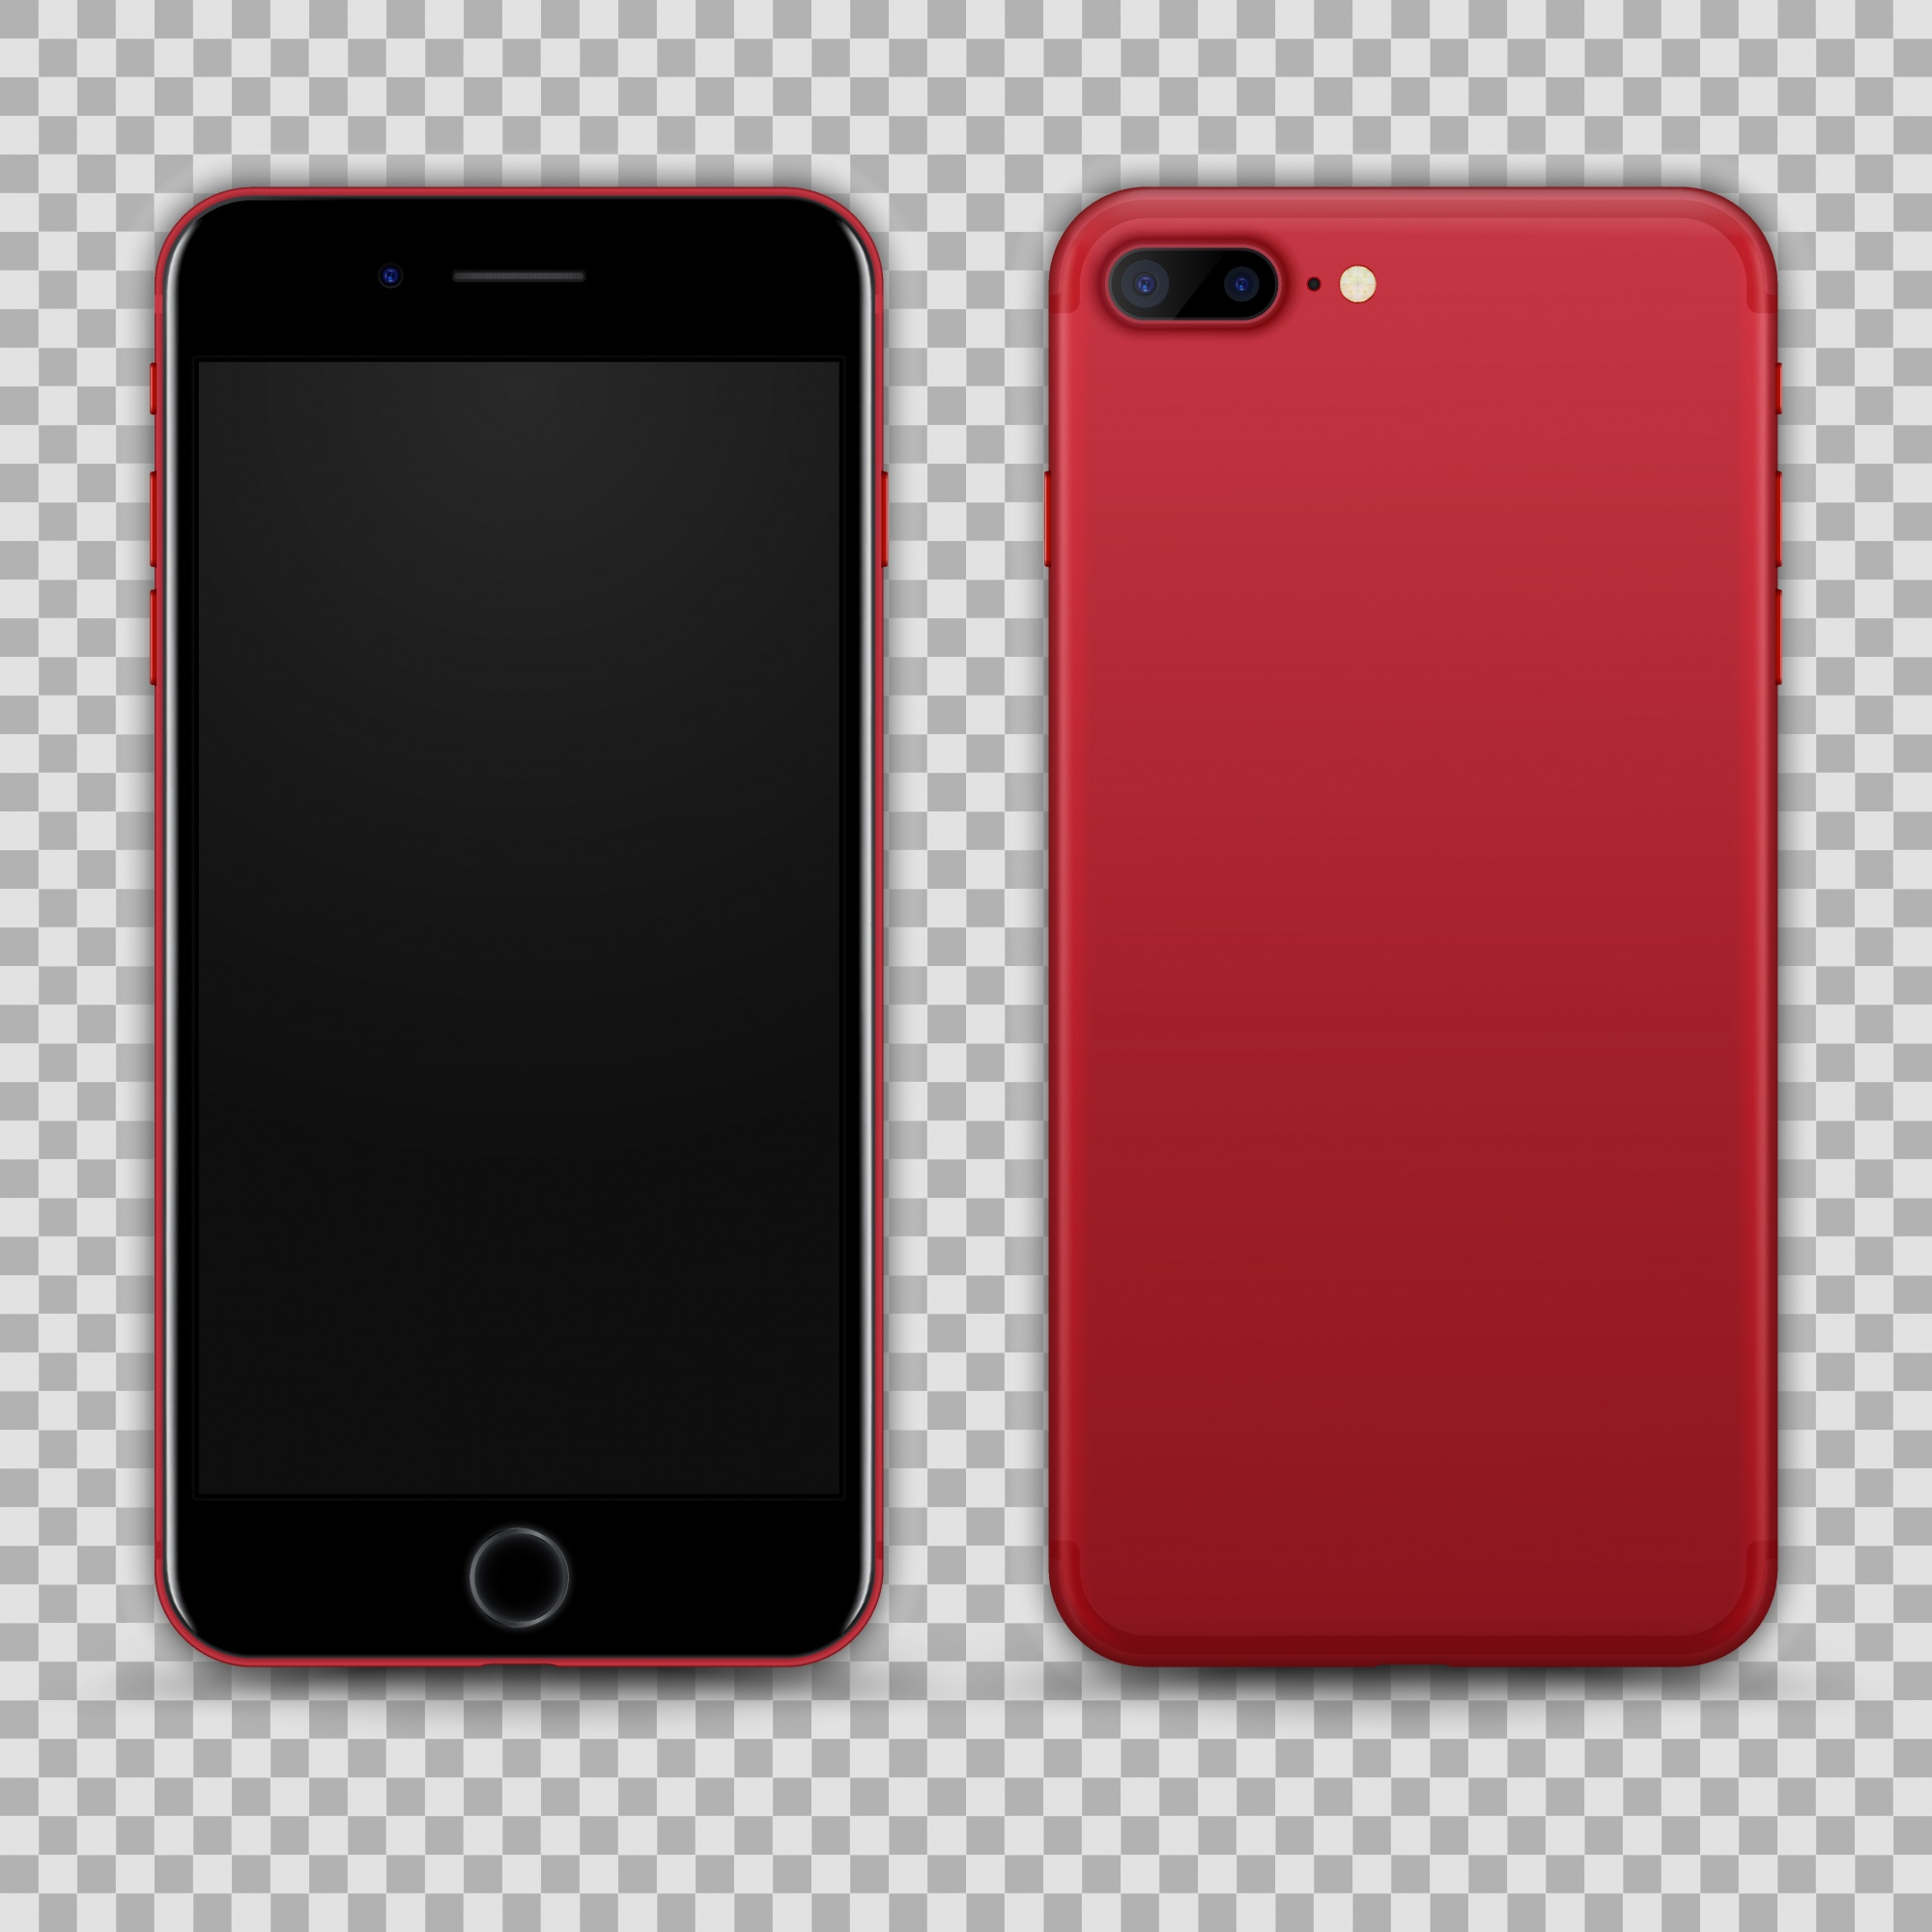 Realistic Red Black Smartphone isolated on Transparent Background. Front and Back View